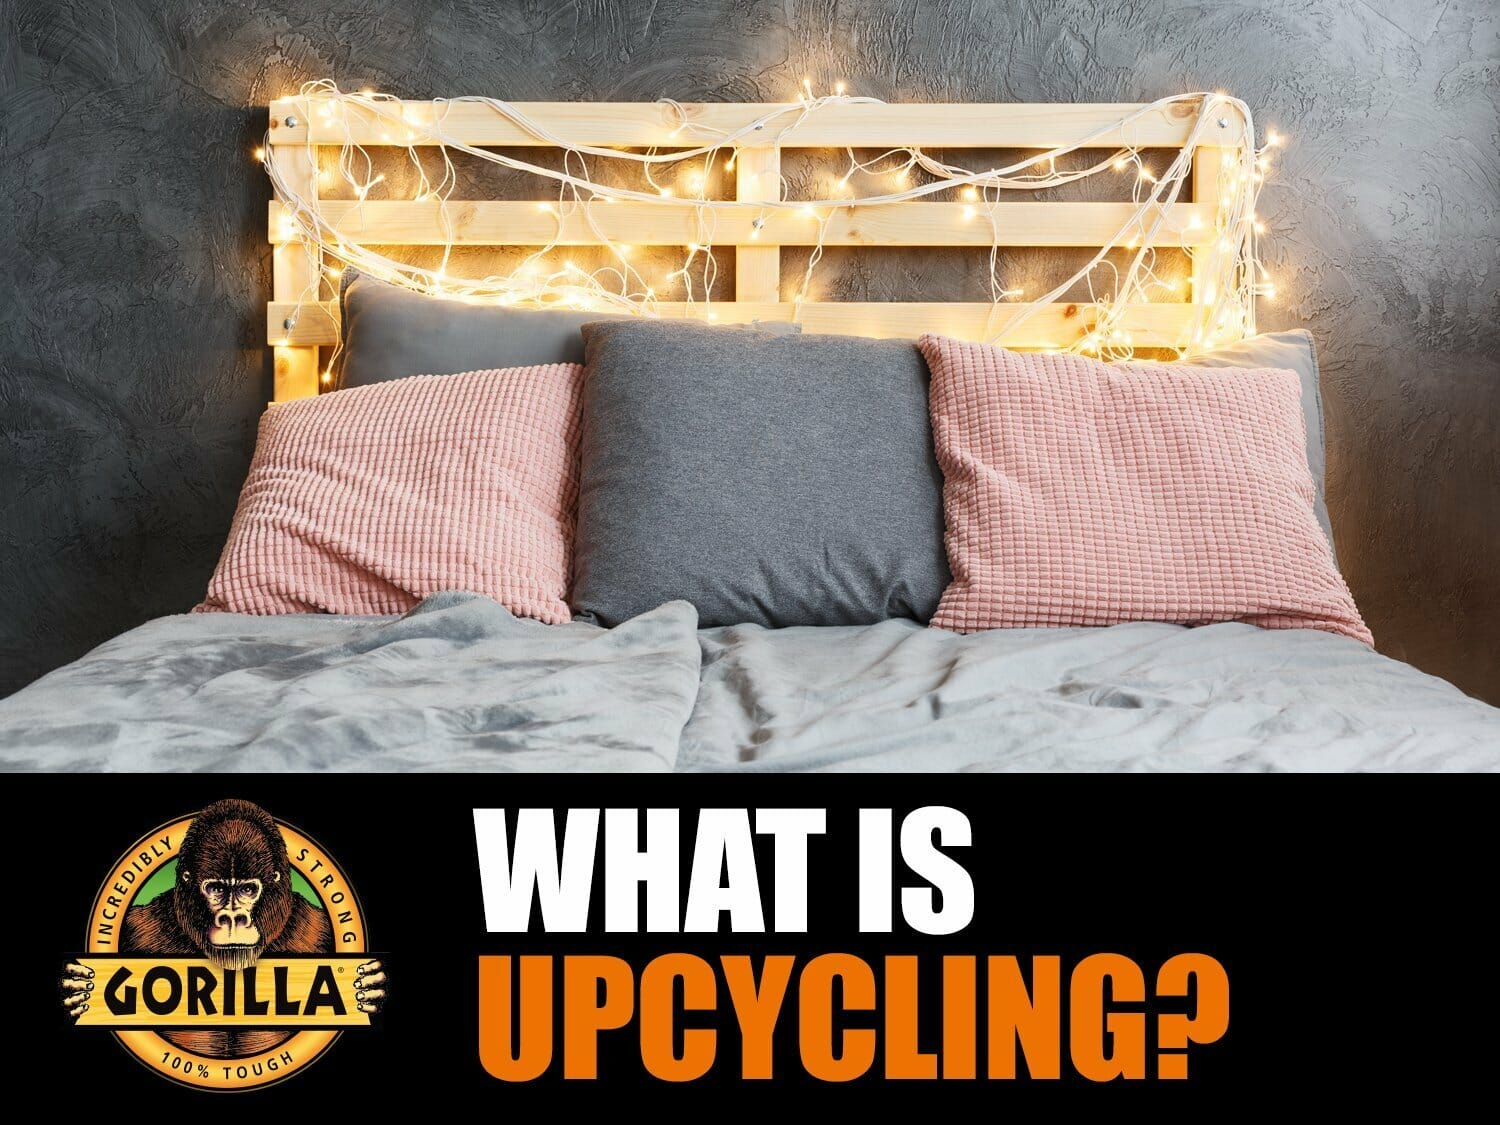 What is Upcycling